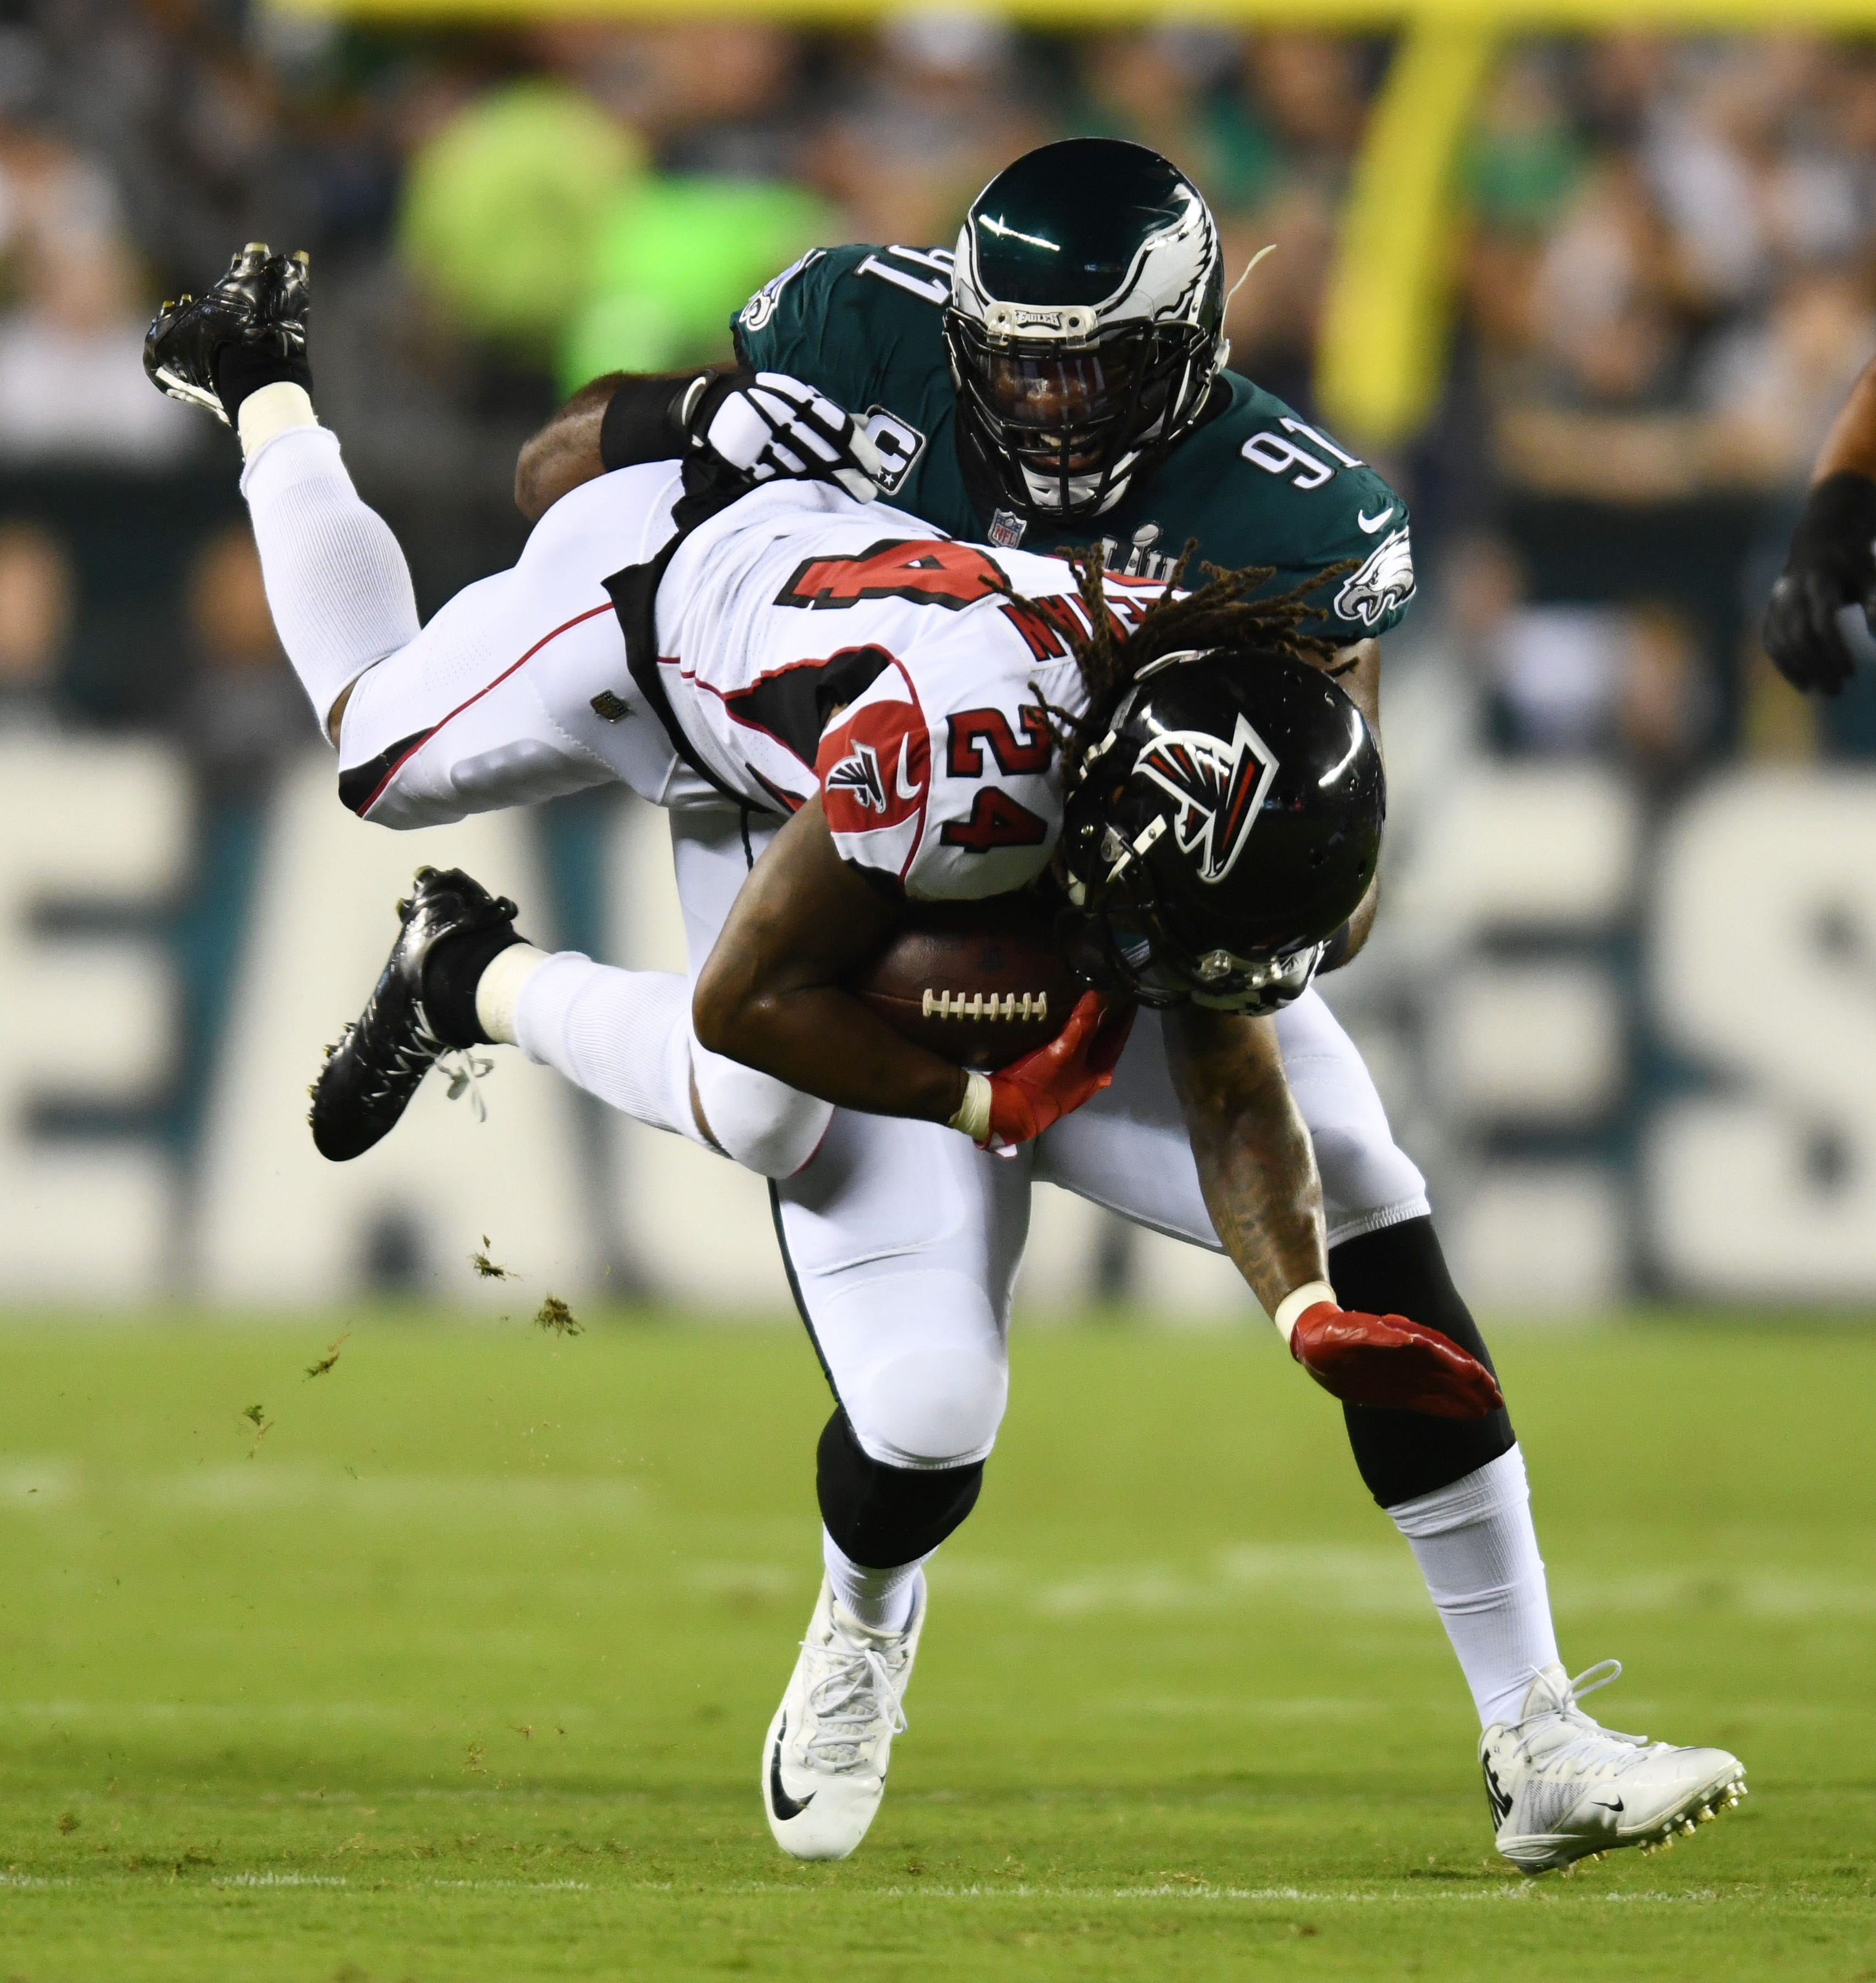 Philadelphia Eagles defensive end Fletcher Cox (91) tackles Atlanta Falcons running back Devonta Freeman (24) in the first quarter at Lincoln Financial Field. - Packers QB Carted Off In Clash With Bears